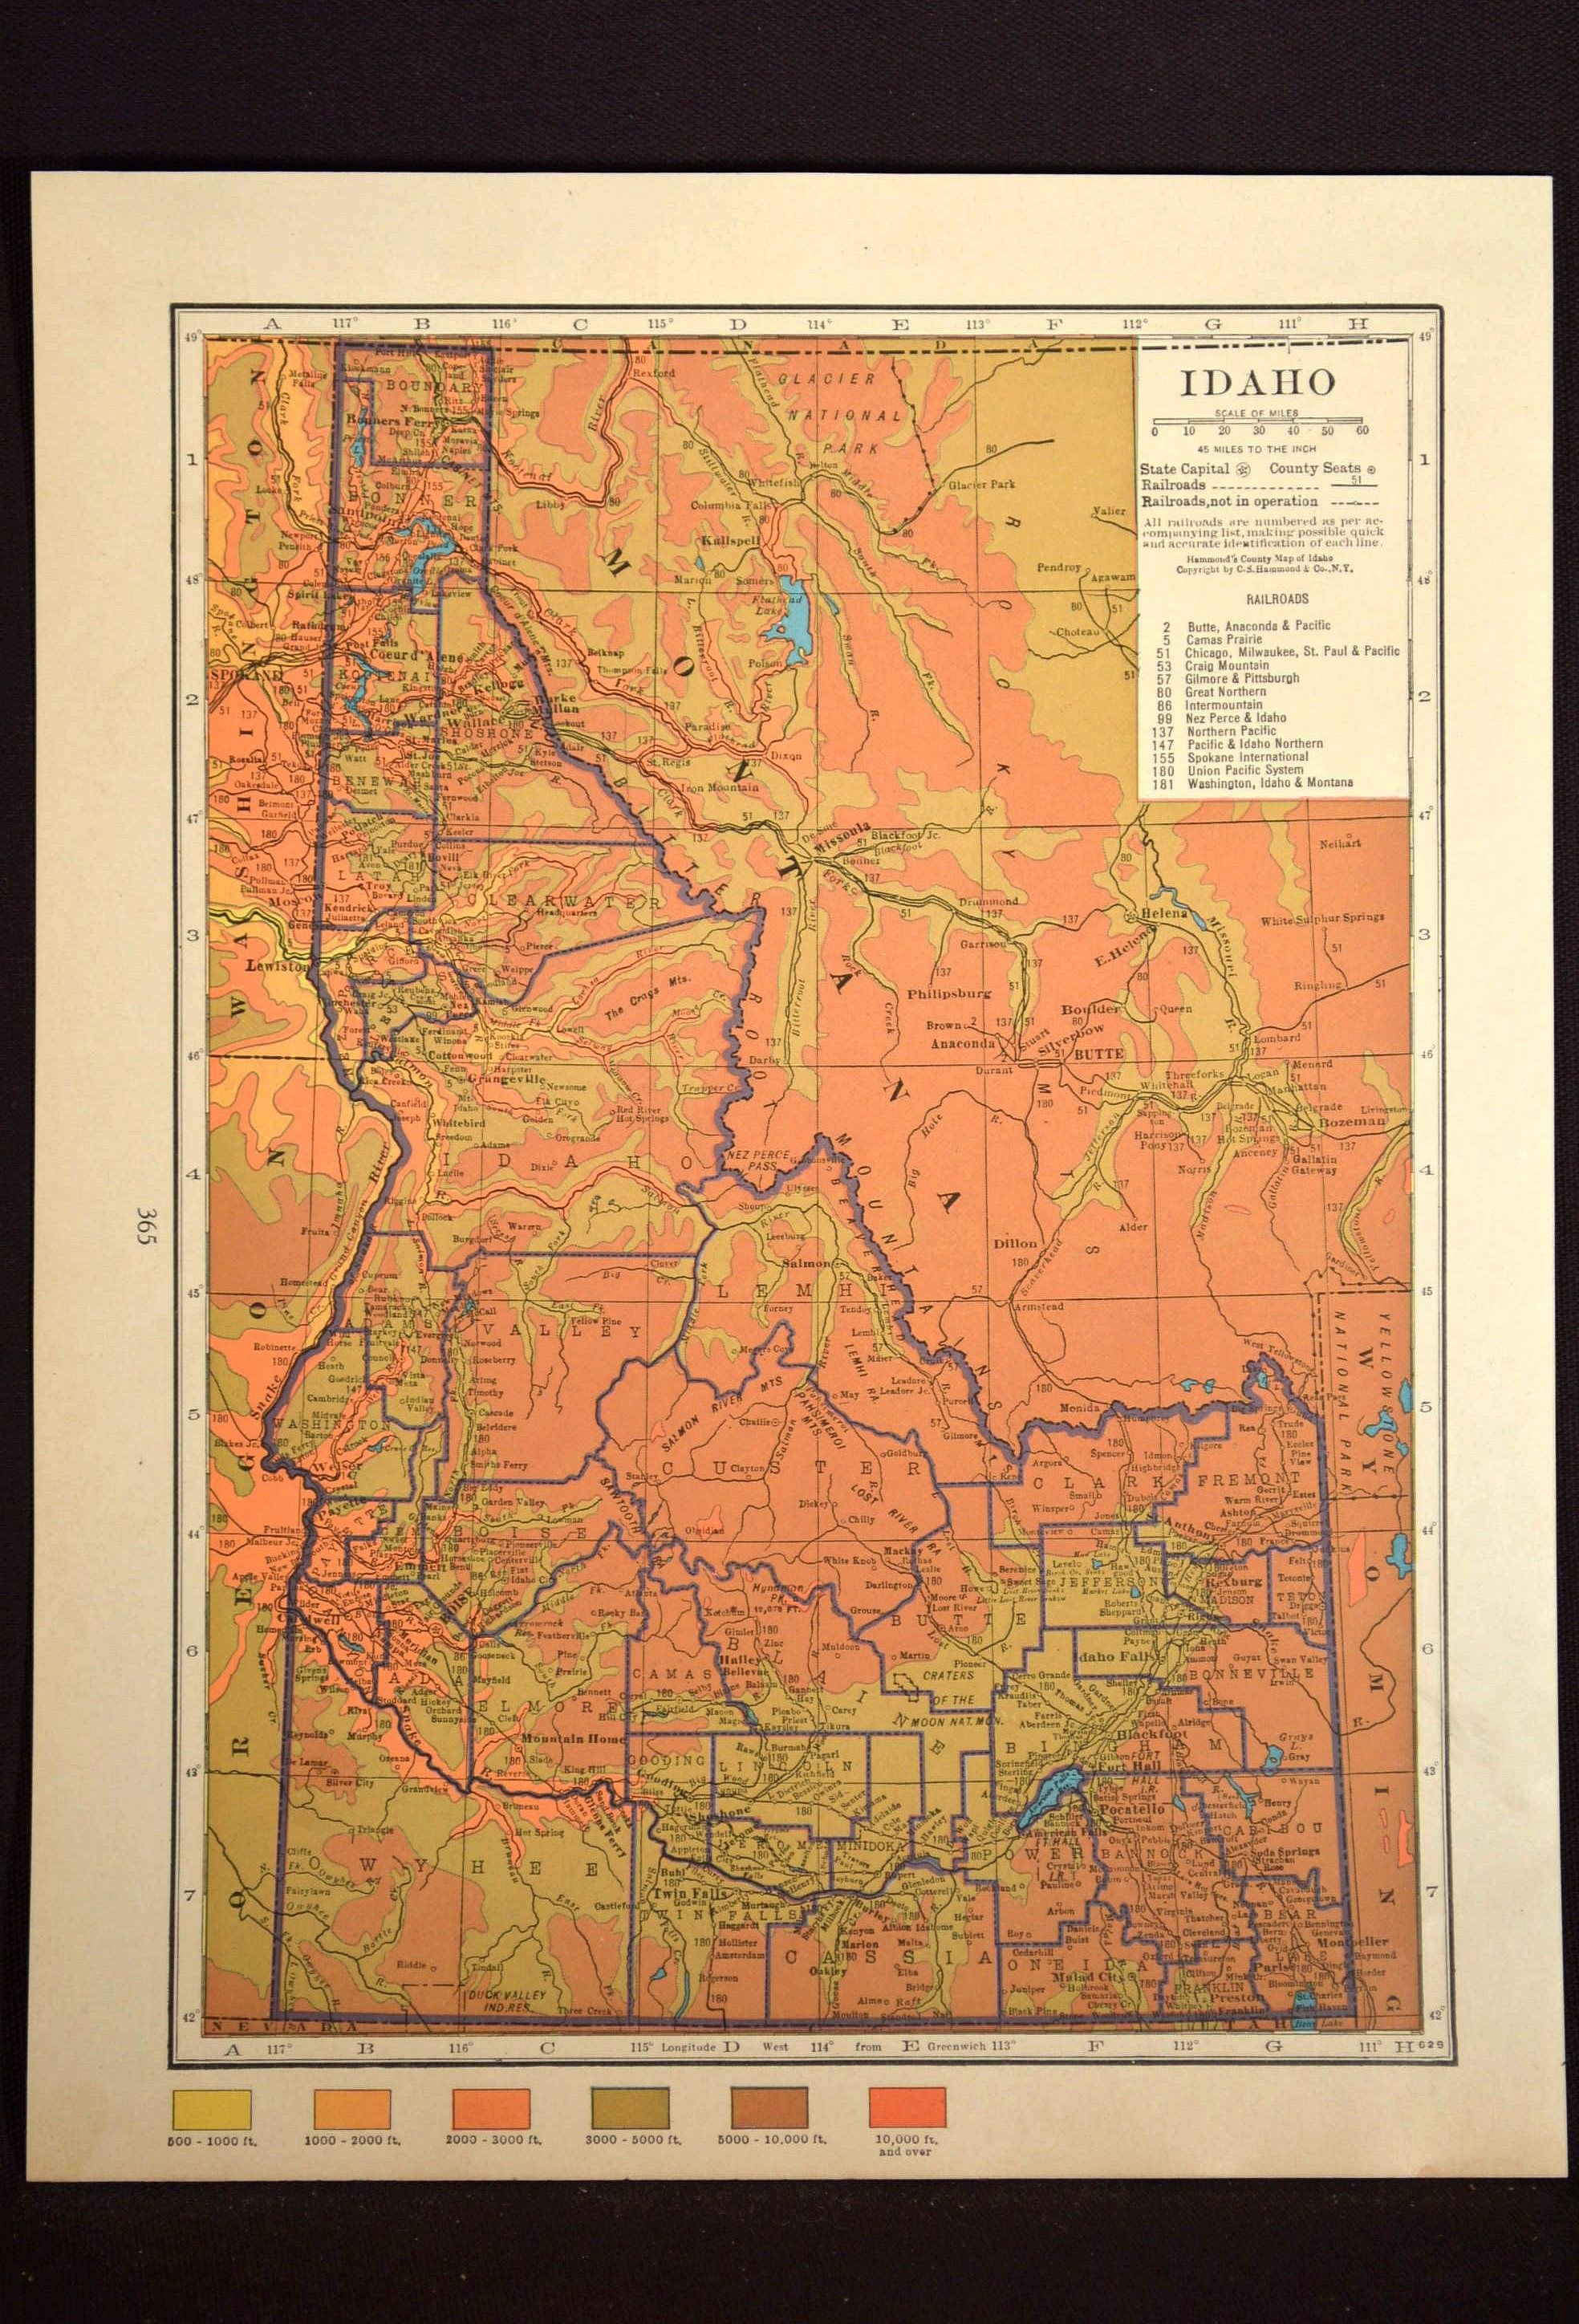 Idaho Map of Idaho Wall Art Decor Topographic Map Colorful ...